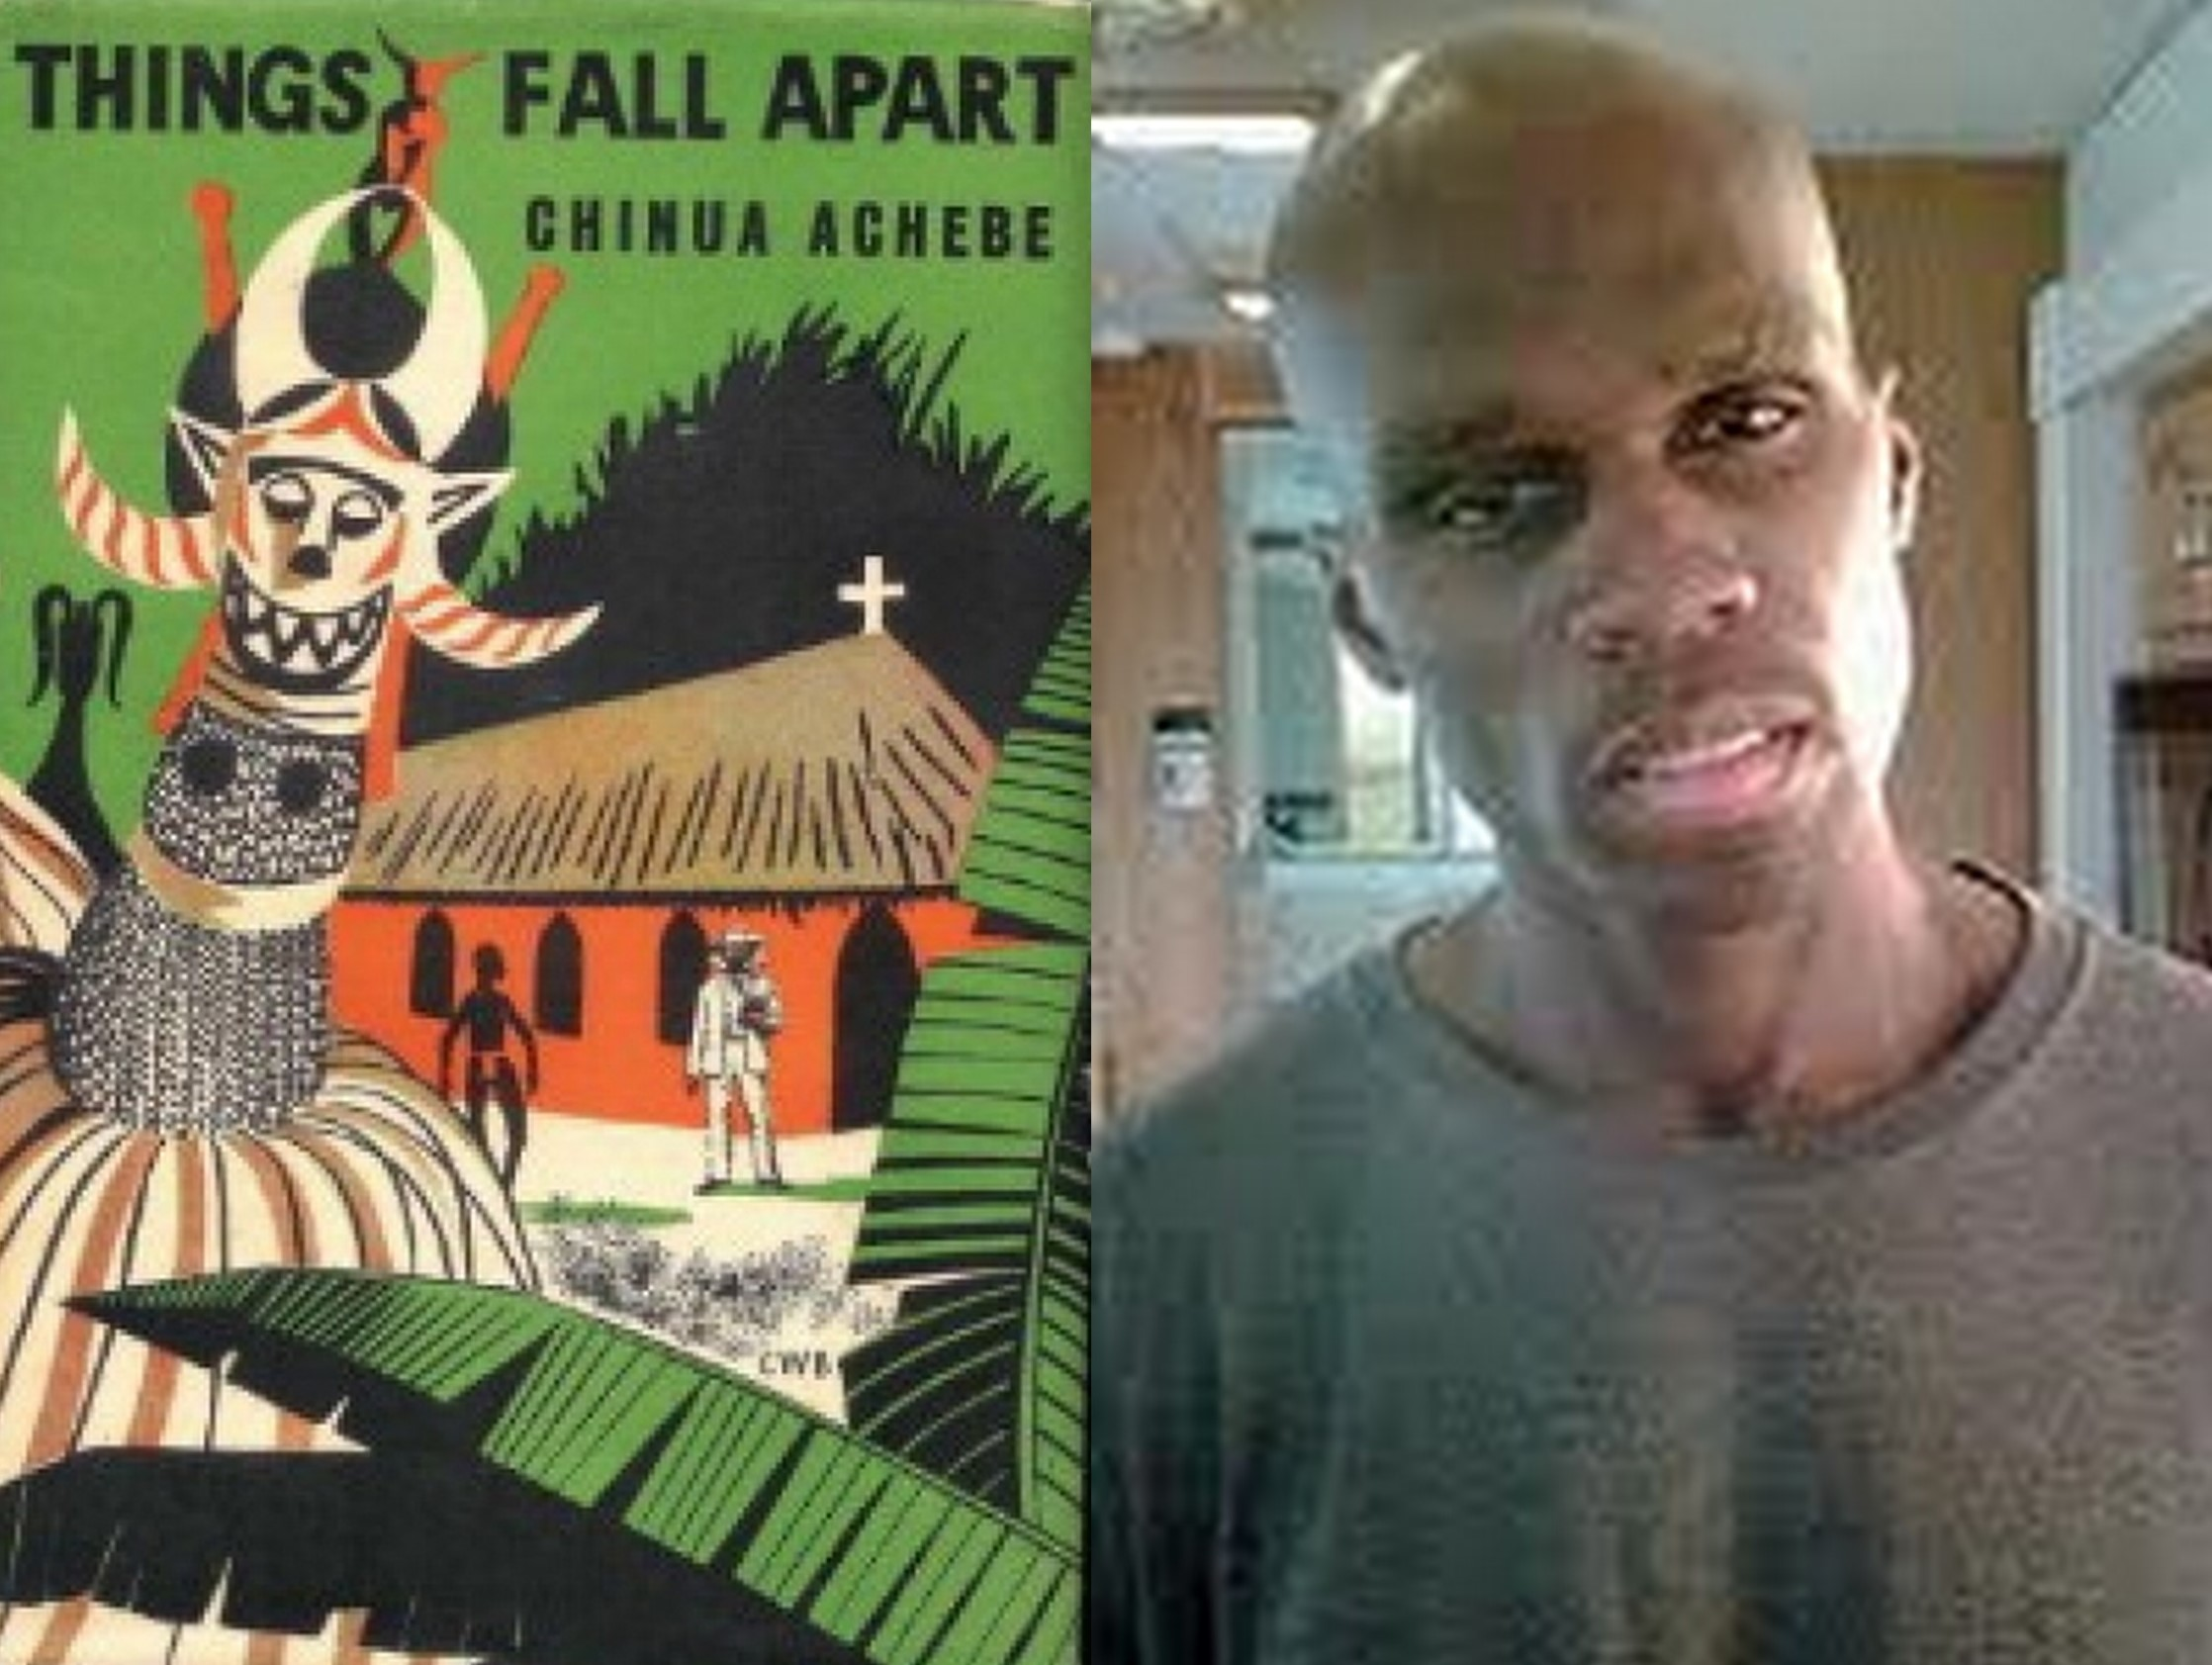 things fall apart chinua achebe movie images things fall apart chinua achebe movie